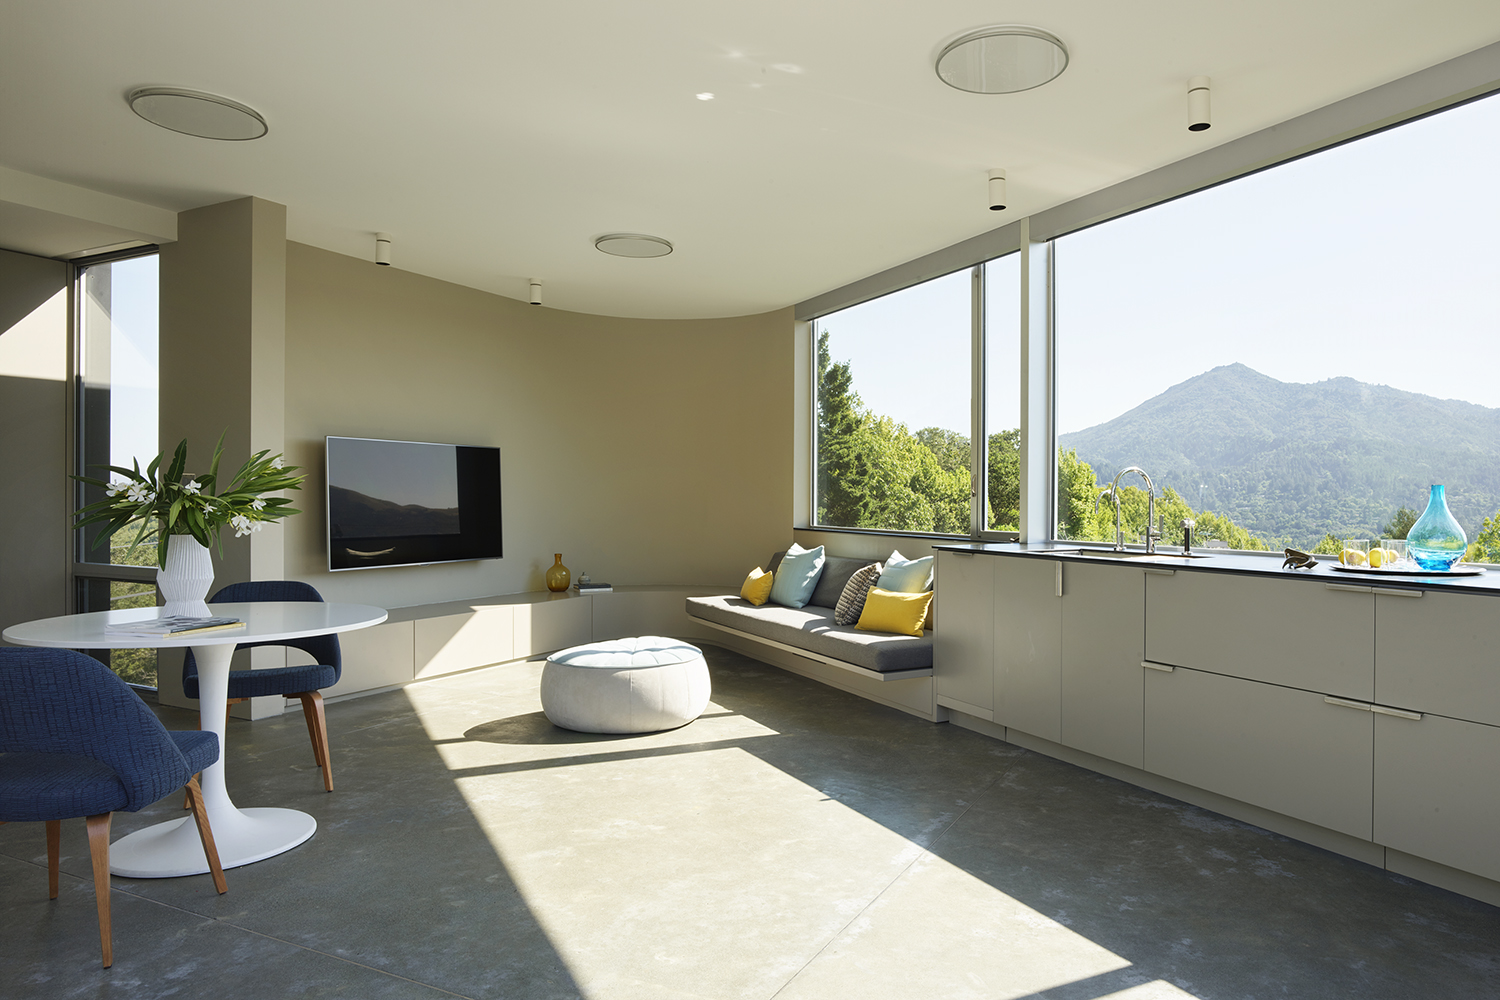 Herspring House renovated in Kentfield California, inside view of living space with big window facing a mountain